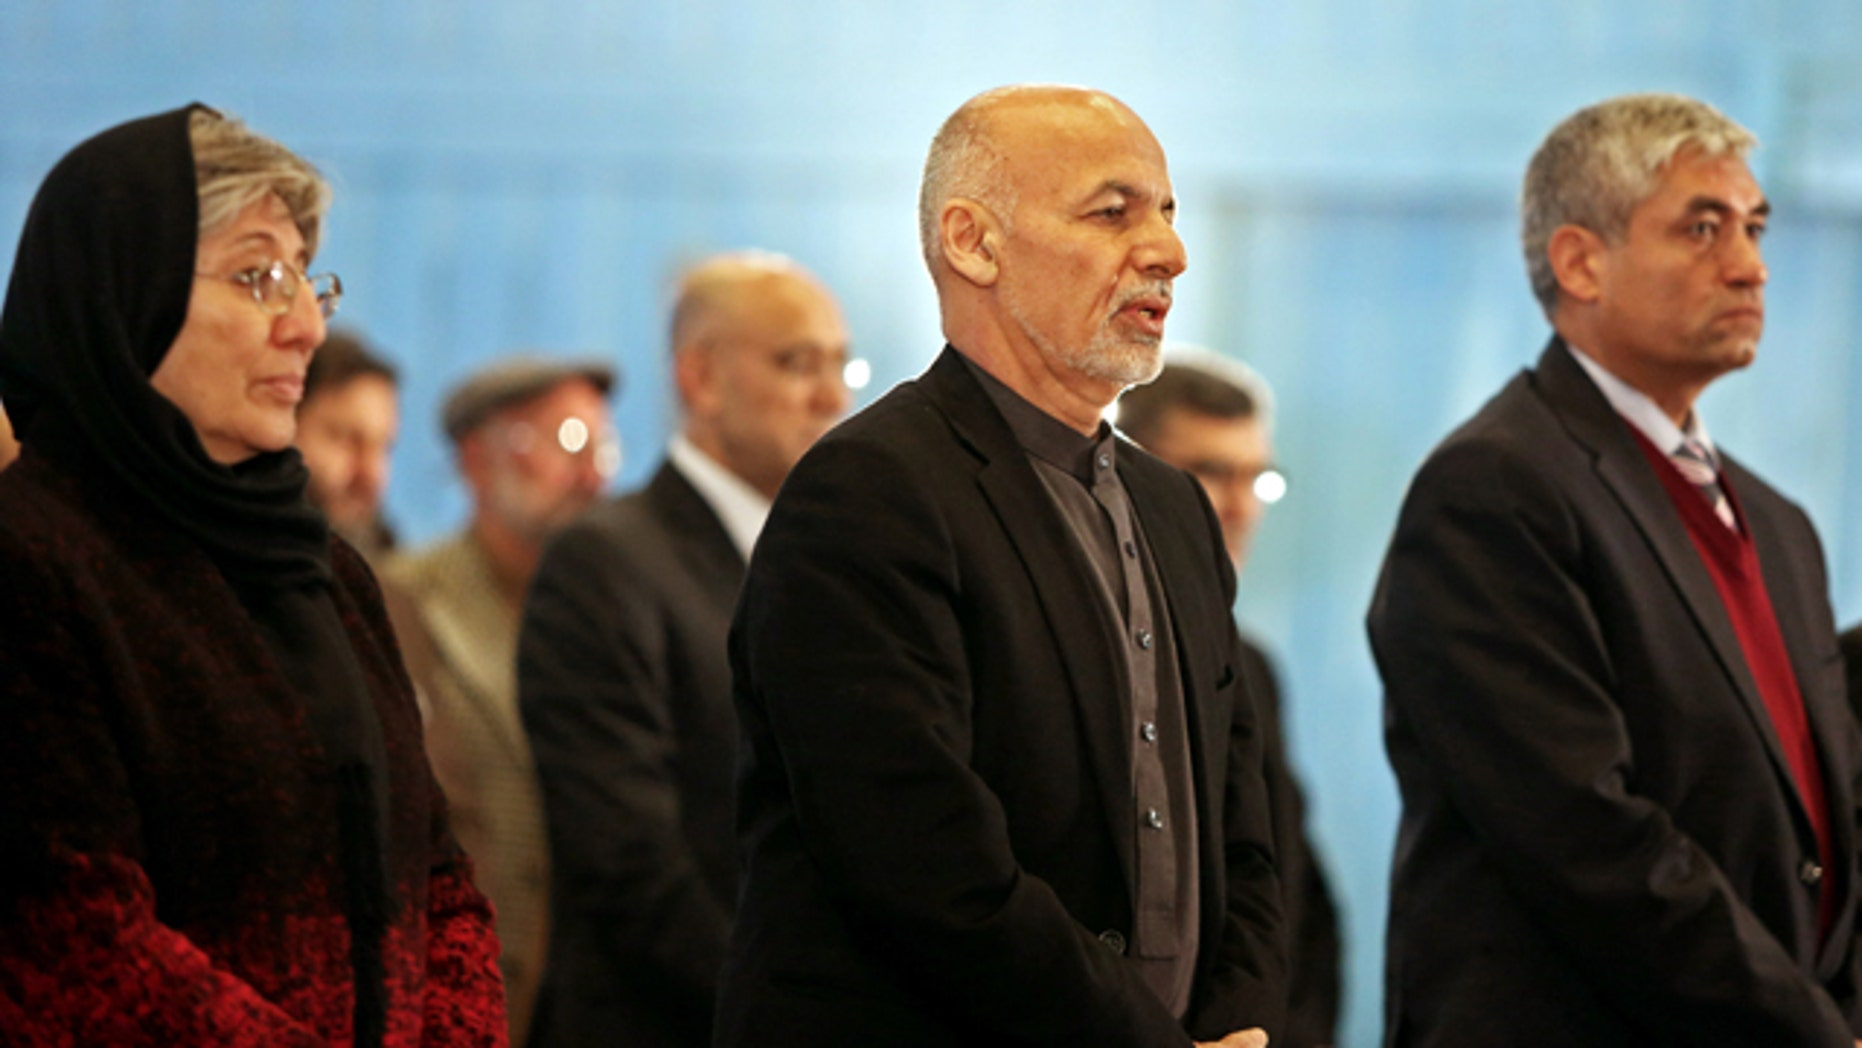 Dec. 14, 2014: Afghanistan President Ashraf Ghani, center, attends a conference marking Human Rights Day in Kabul. (AP Photo/Rahmat Gul)